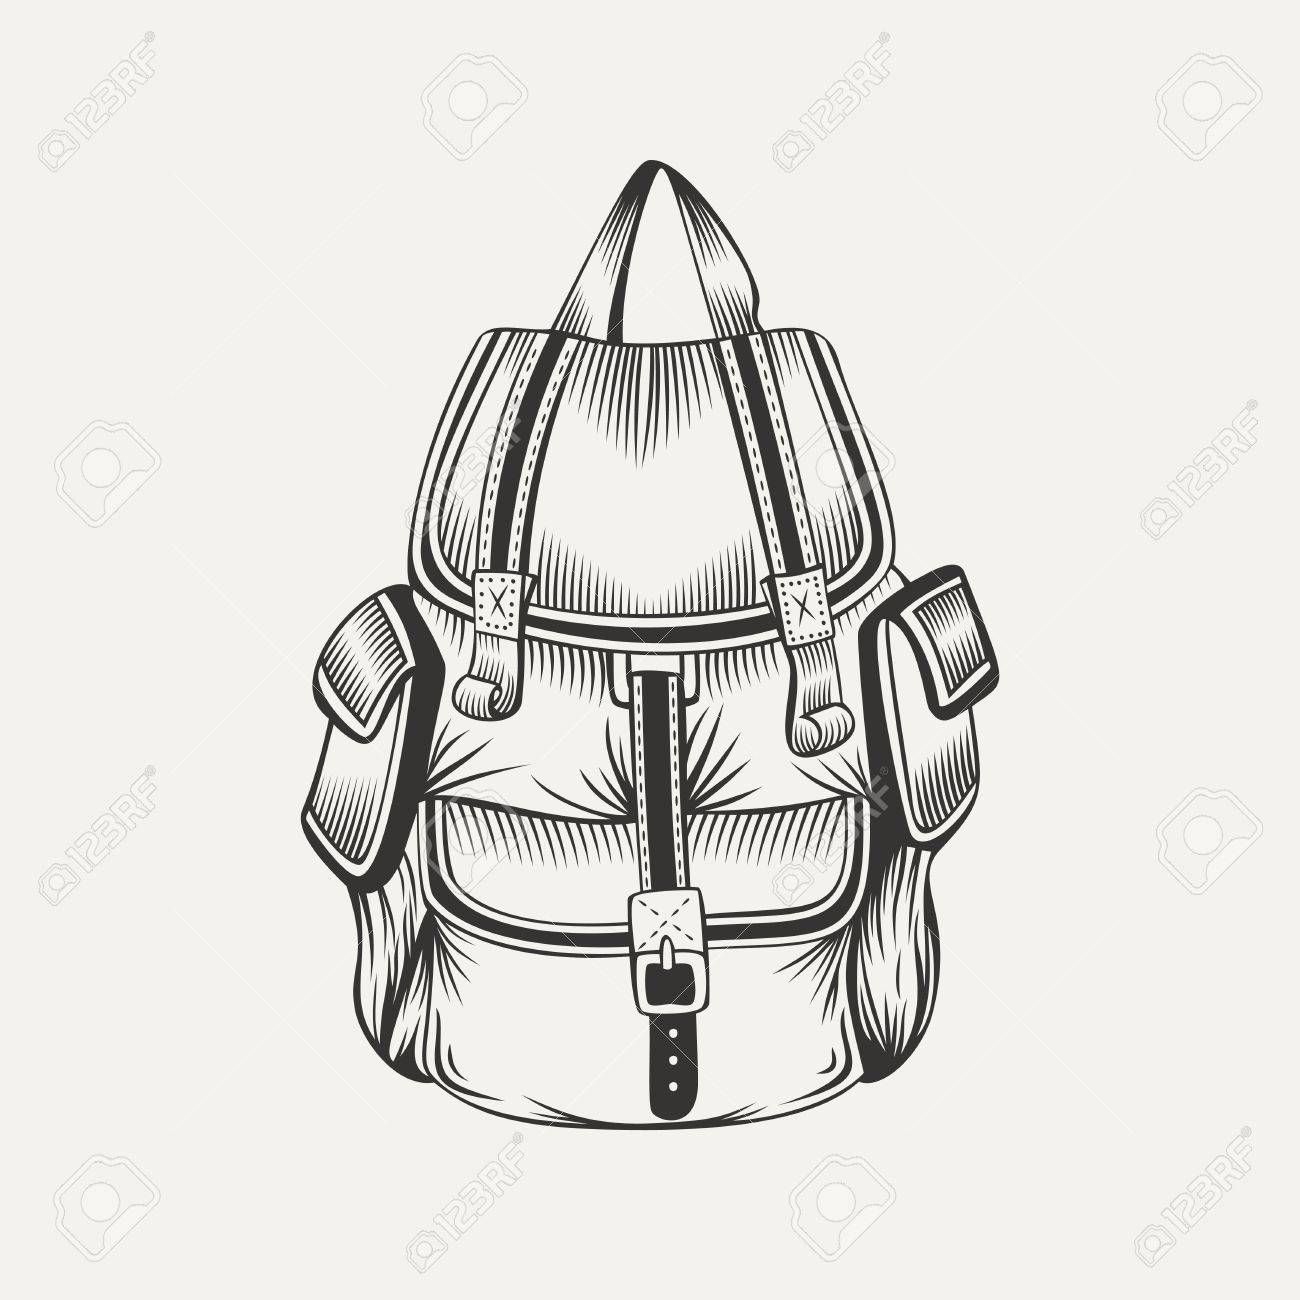 Illustration Of Hiking Backpack Camping Gear Stock Vector